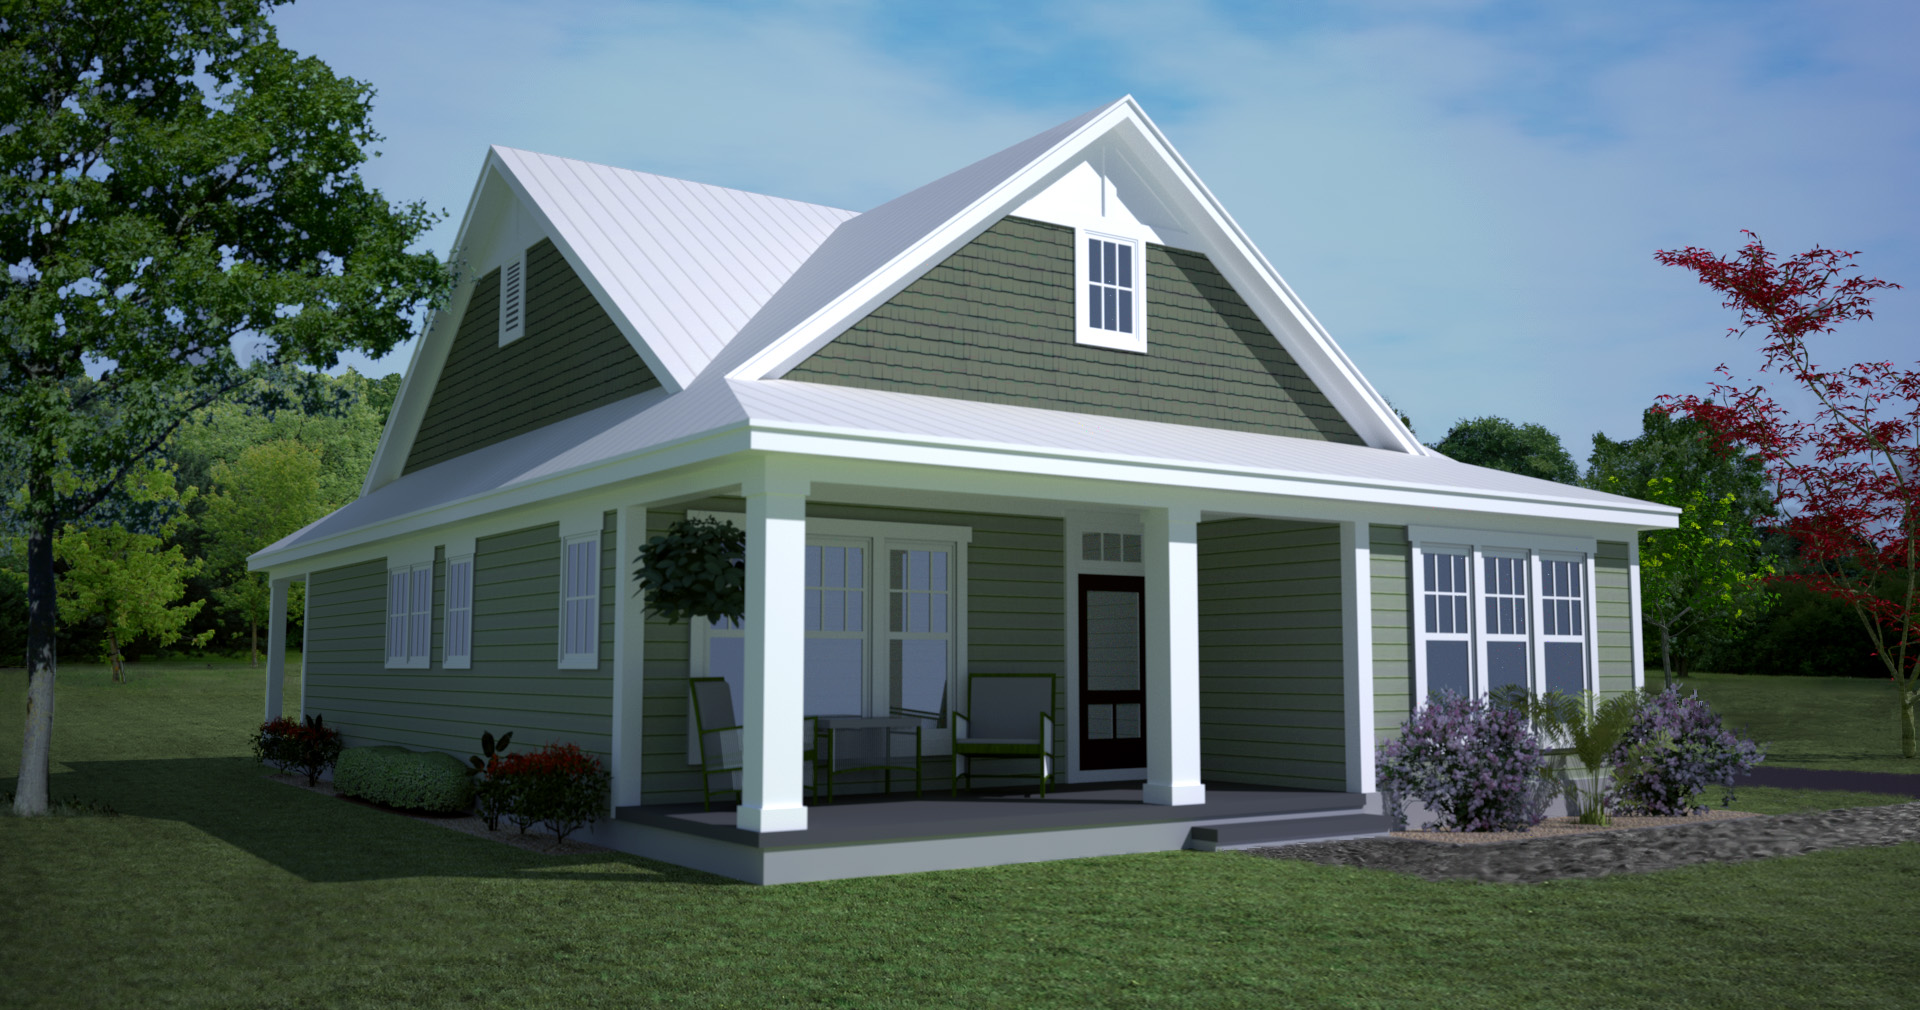 Classic american home styles house design plans for American classic house plans